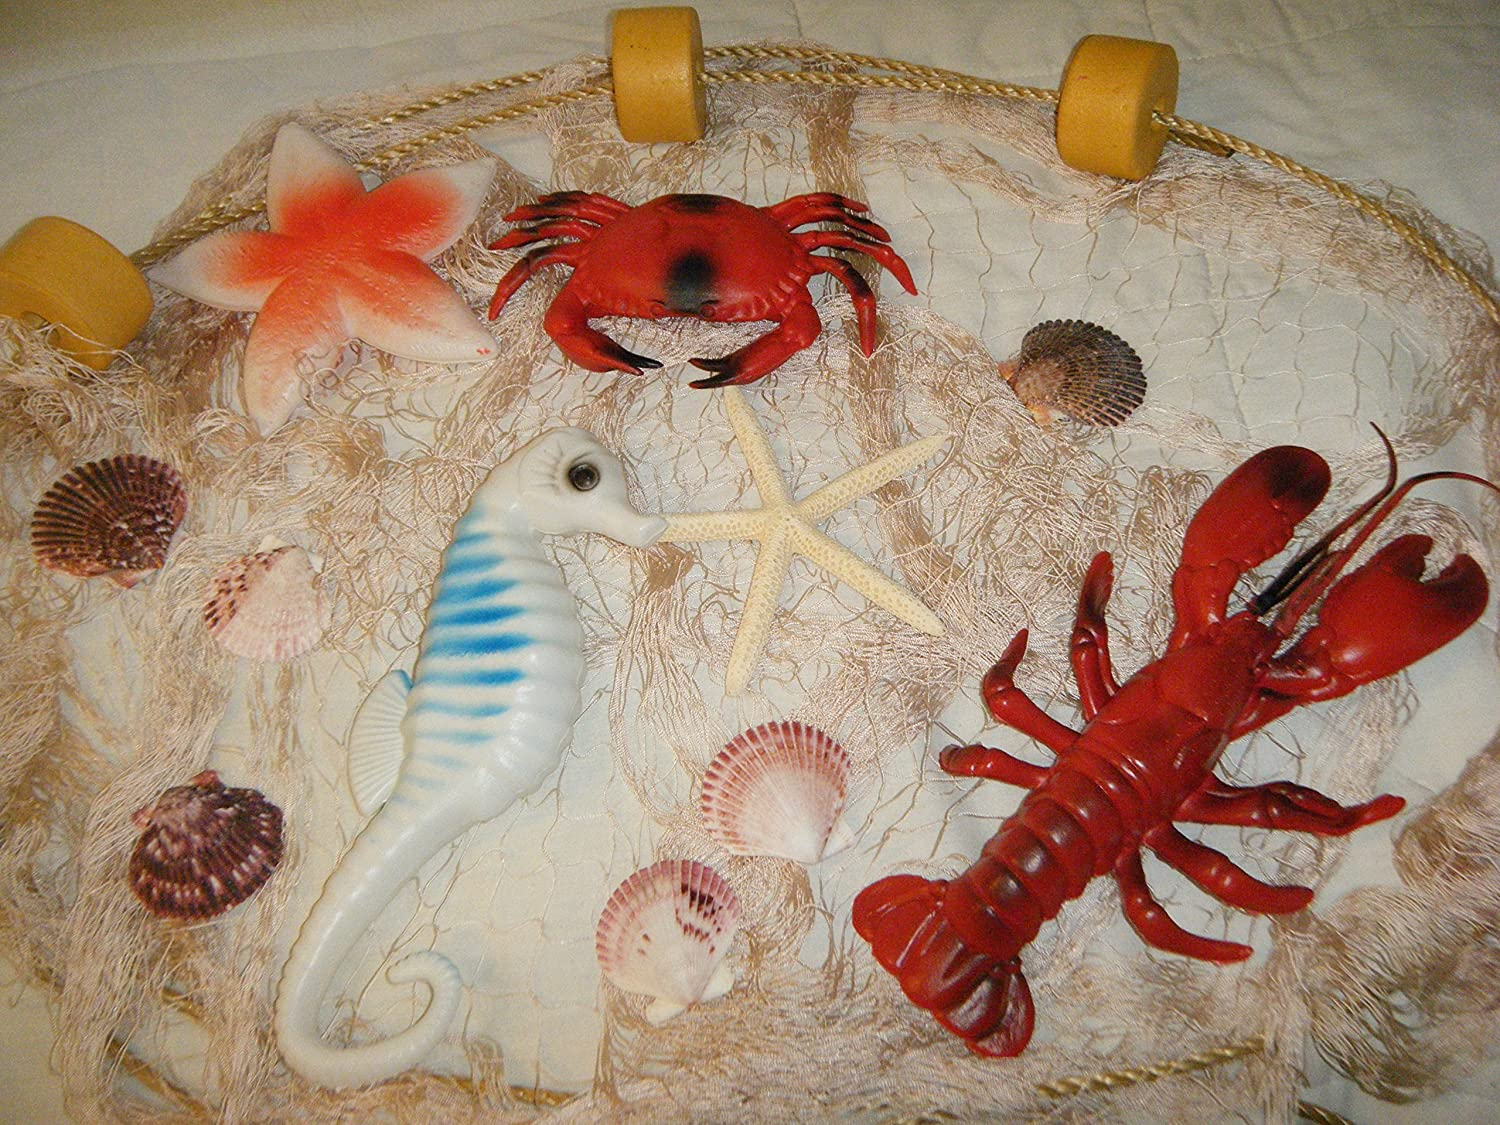 Tan Decorative Nautical Fish Netting with White Starfish, Scallop Shells, Floats, Lobster, Crab, Starfish, Seahorse